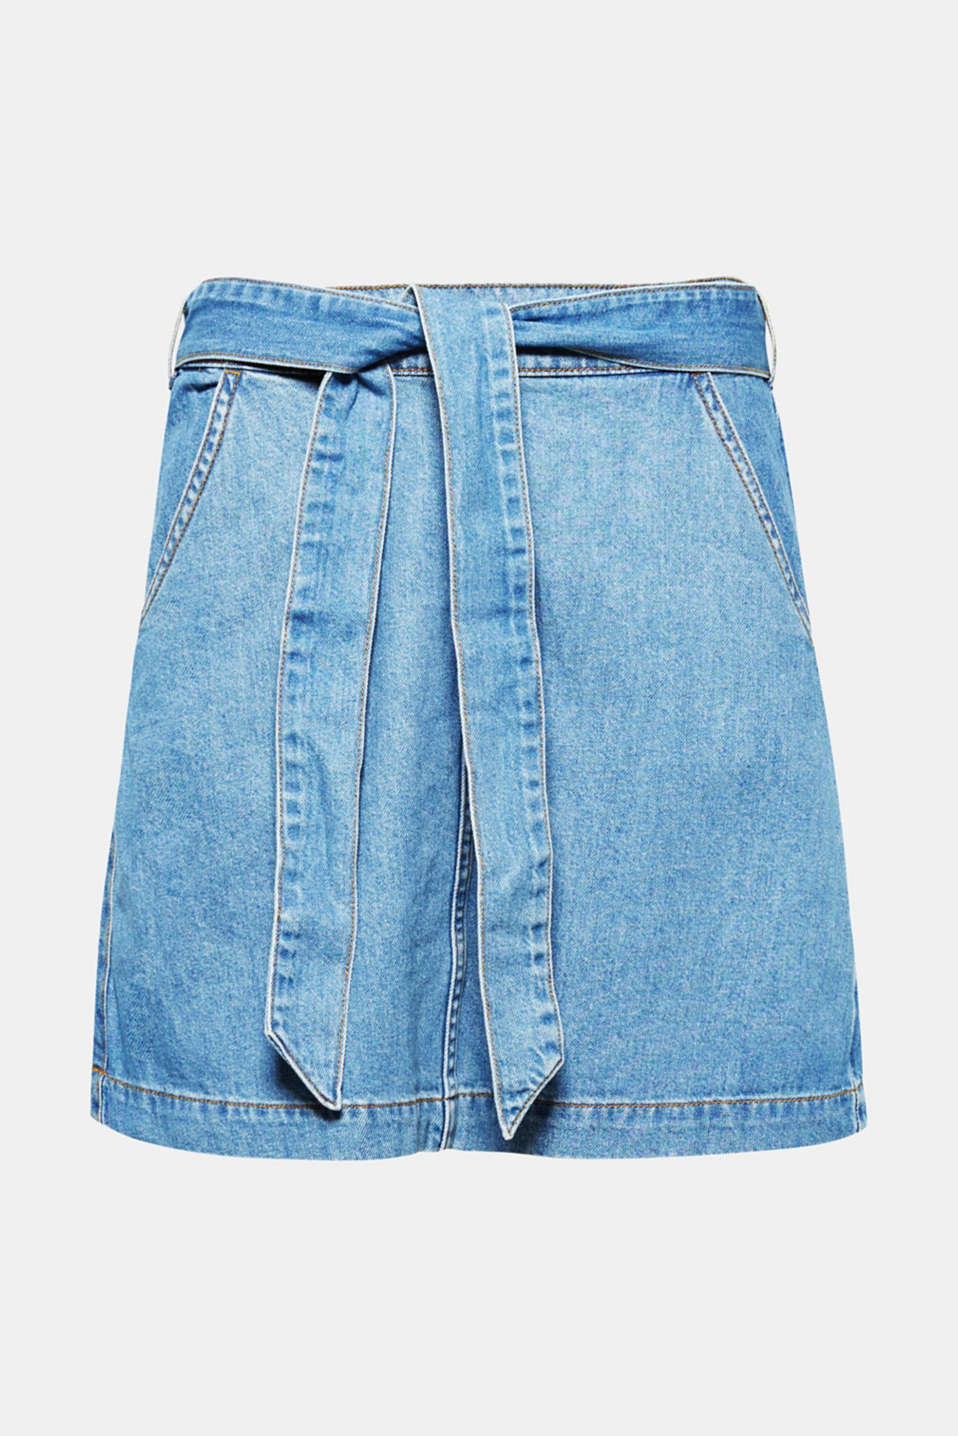 With its wide bow belt, this denim skirt with sustainable organic cotton is a style hit.